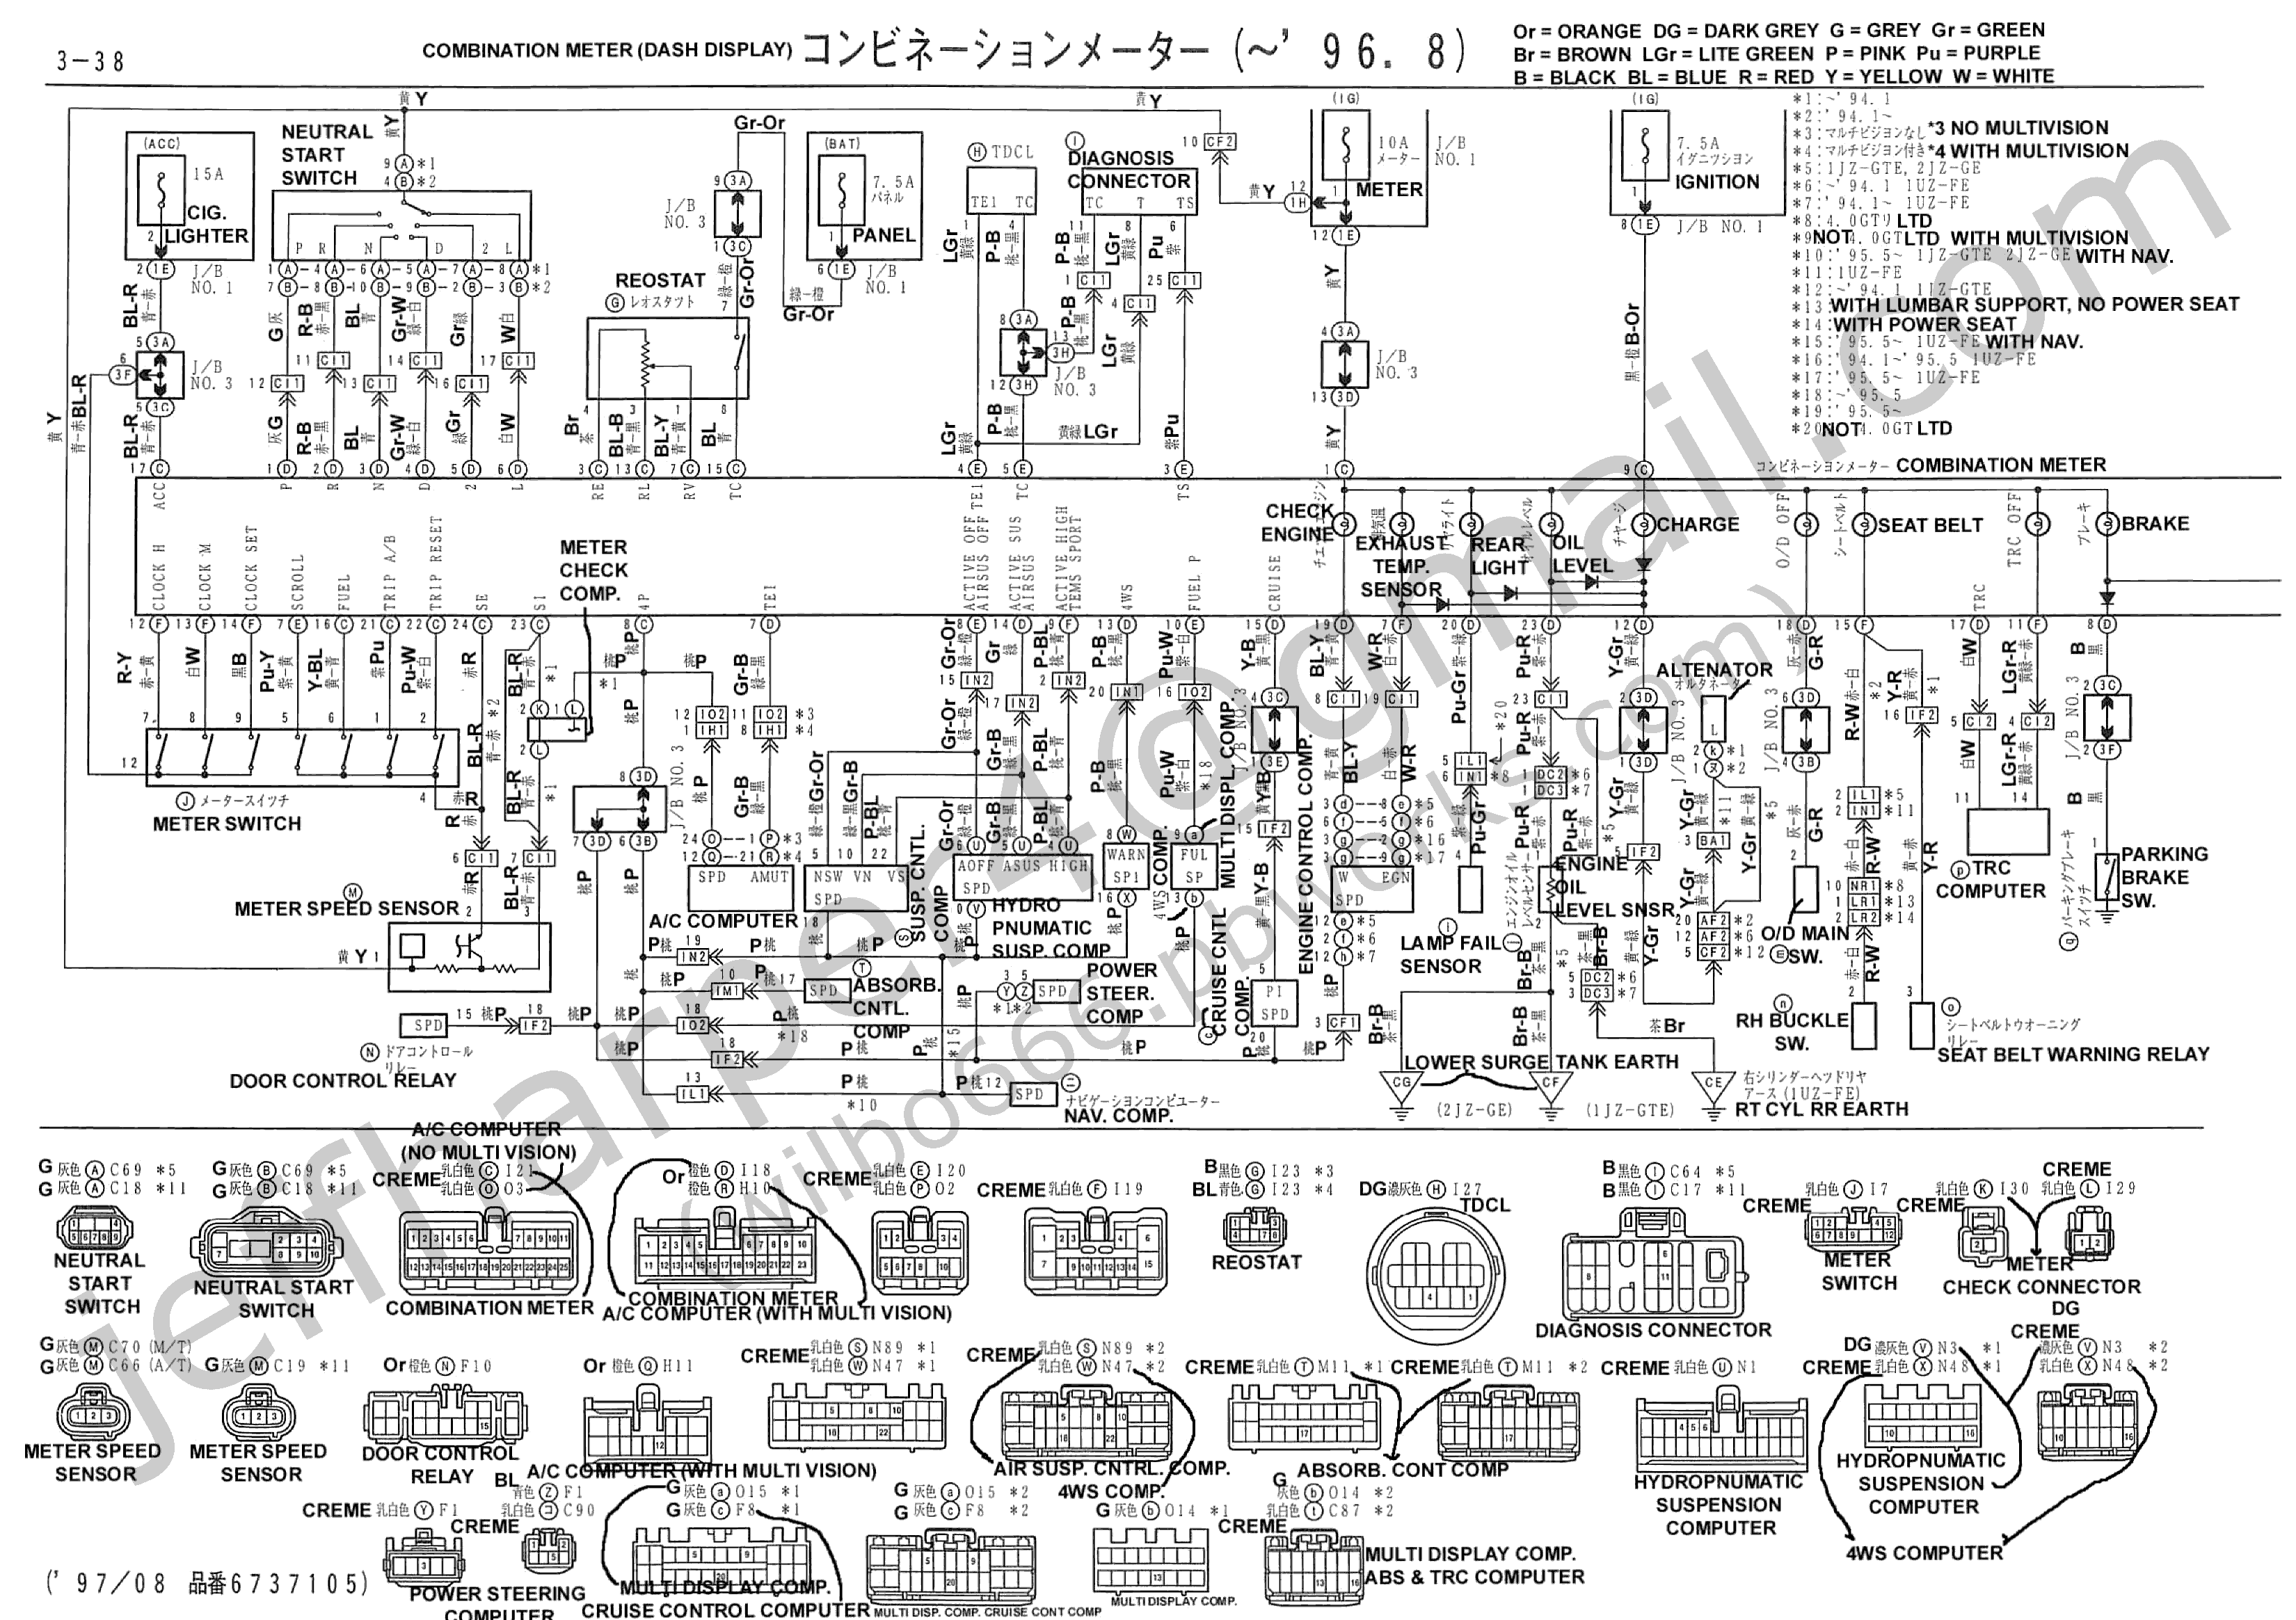 xZZ3x Electrical Wiring Diagram 6737105 3 38?resize\\\\\\\\\\\=665%2C469 1999 pontiac montana wiring diagram ke 2003 pontiac bonneville 2007 pontiac g6 radio wiring diagram at bakdesigns.co